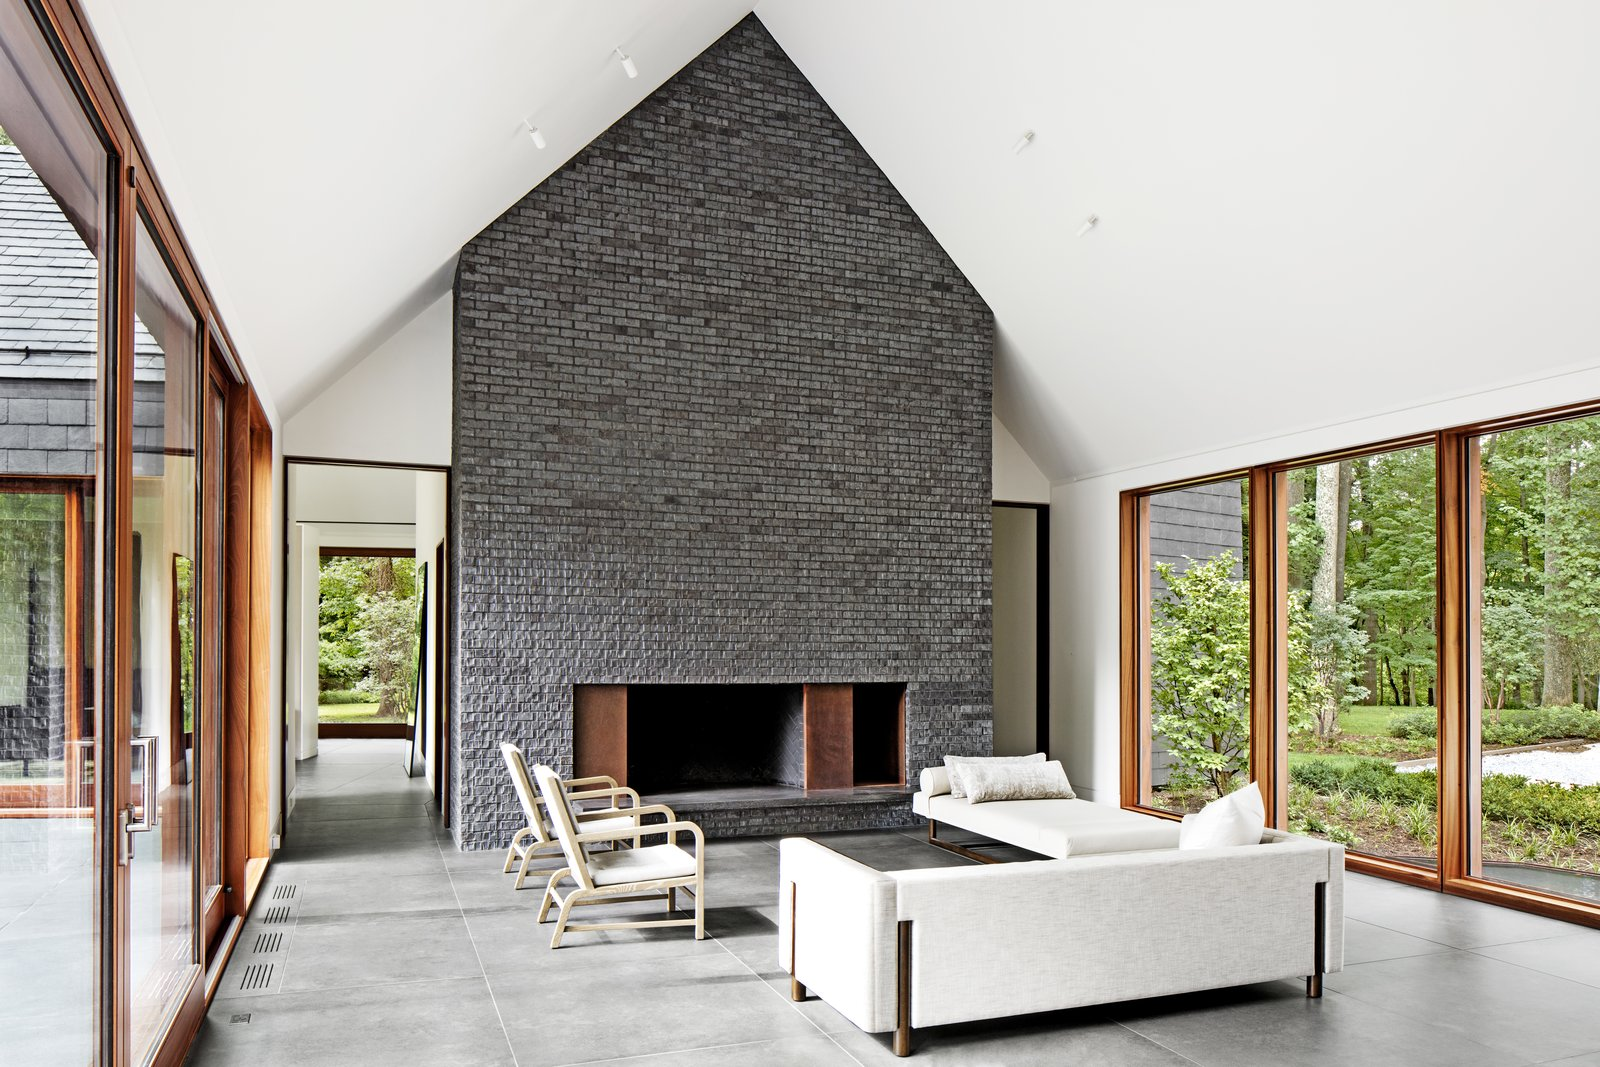 Living Room, Standard Layout Fireplace, Concrete Floor, Ceiling Lighting, Bench, Chair, and Sofa The residence was designed by Baltimore-based architecture firm Ziger/Snead and built by Blackhorse Construction. Its living room features chairs by A. Rudin and a daybed and sofa by Bright Chair.  Photo 3 of 14 in After a Fire, a Maryland Couple Turn to Charred Wood to Rebuild Their House